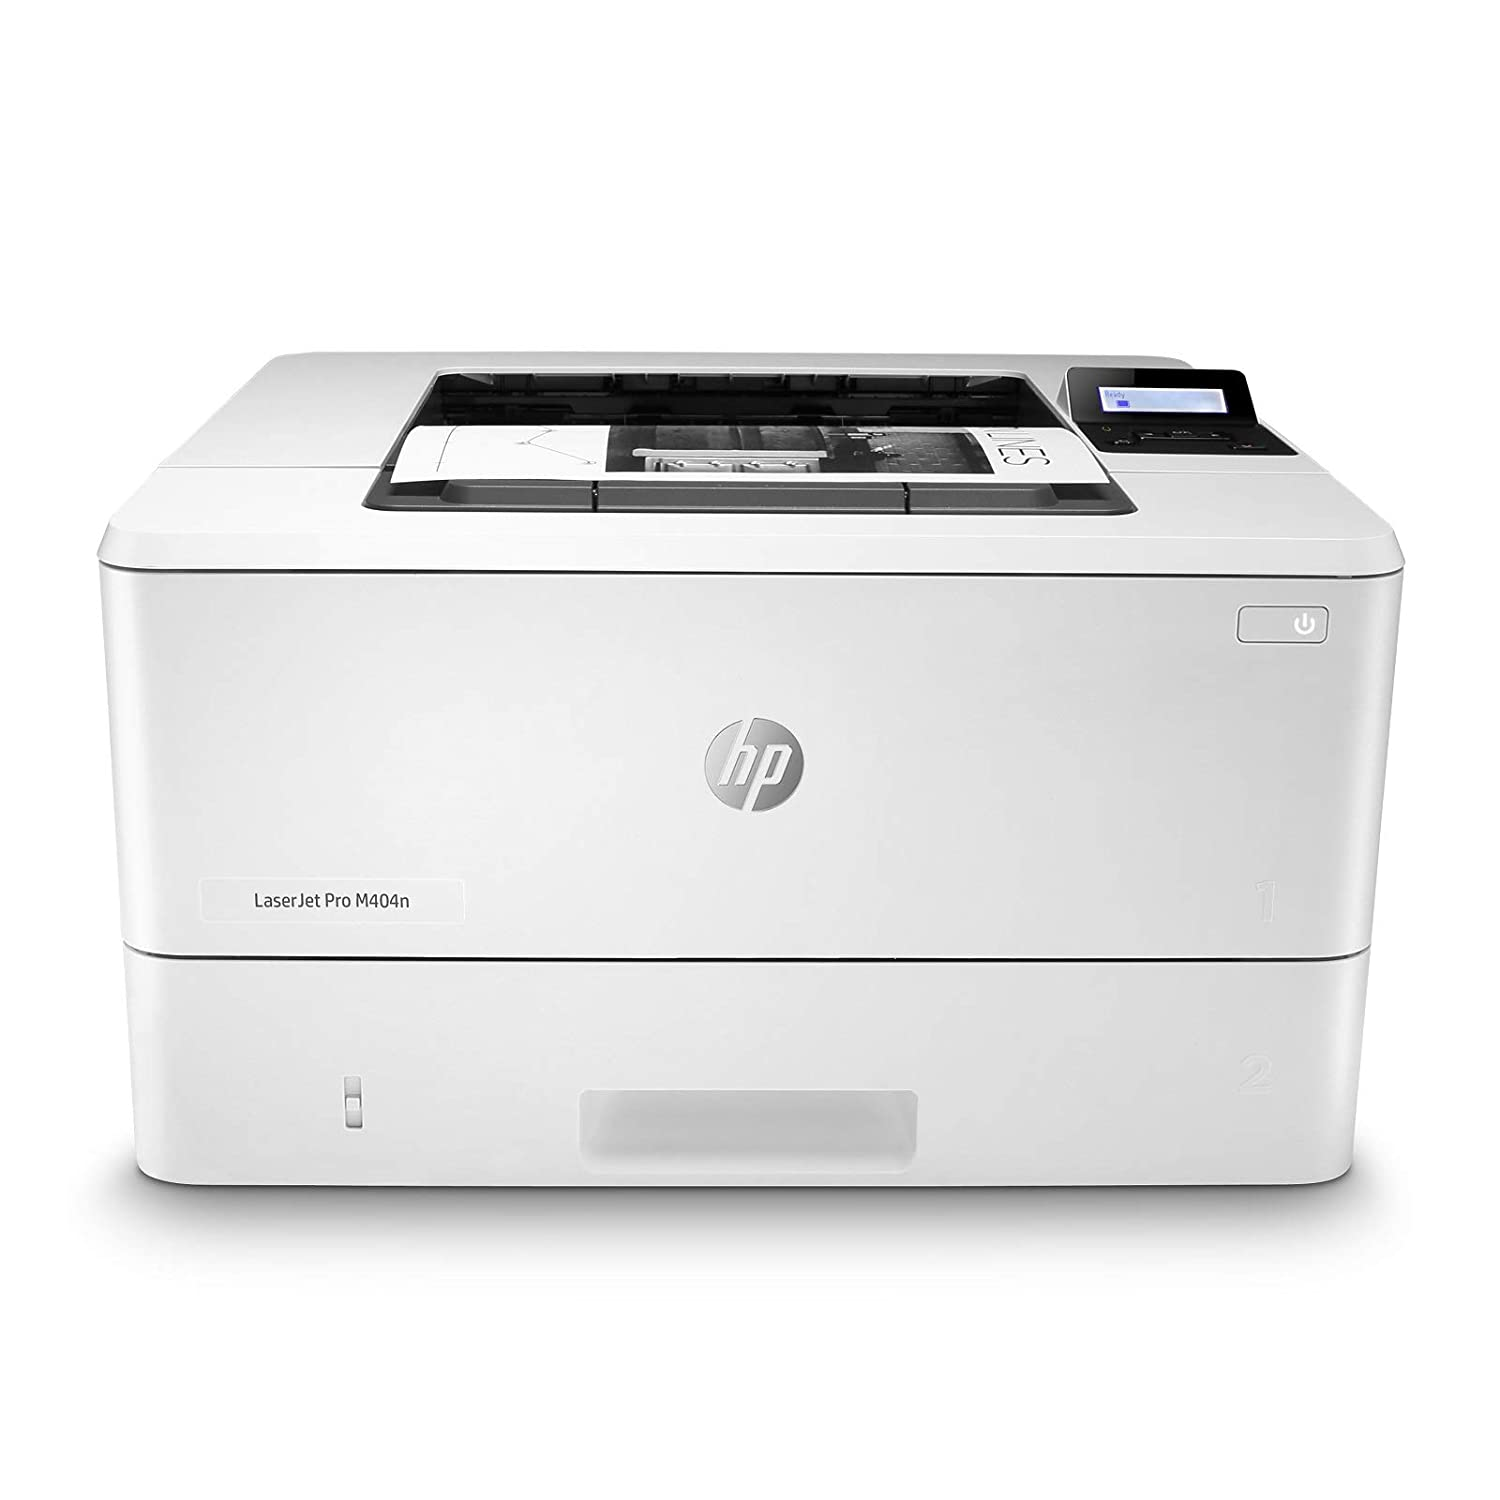 HP Laserjet Pro M404dw (W1A56A) with Additional 550-Sheet Feeder Tray (D9P29A)